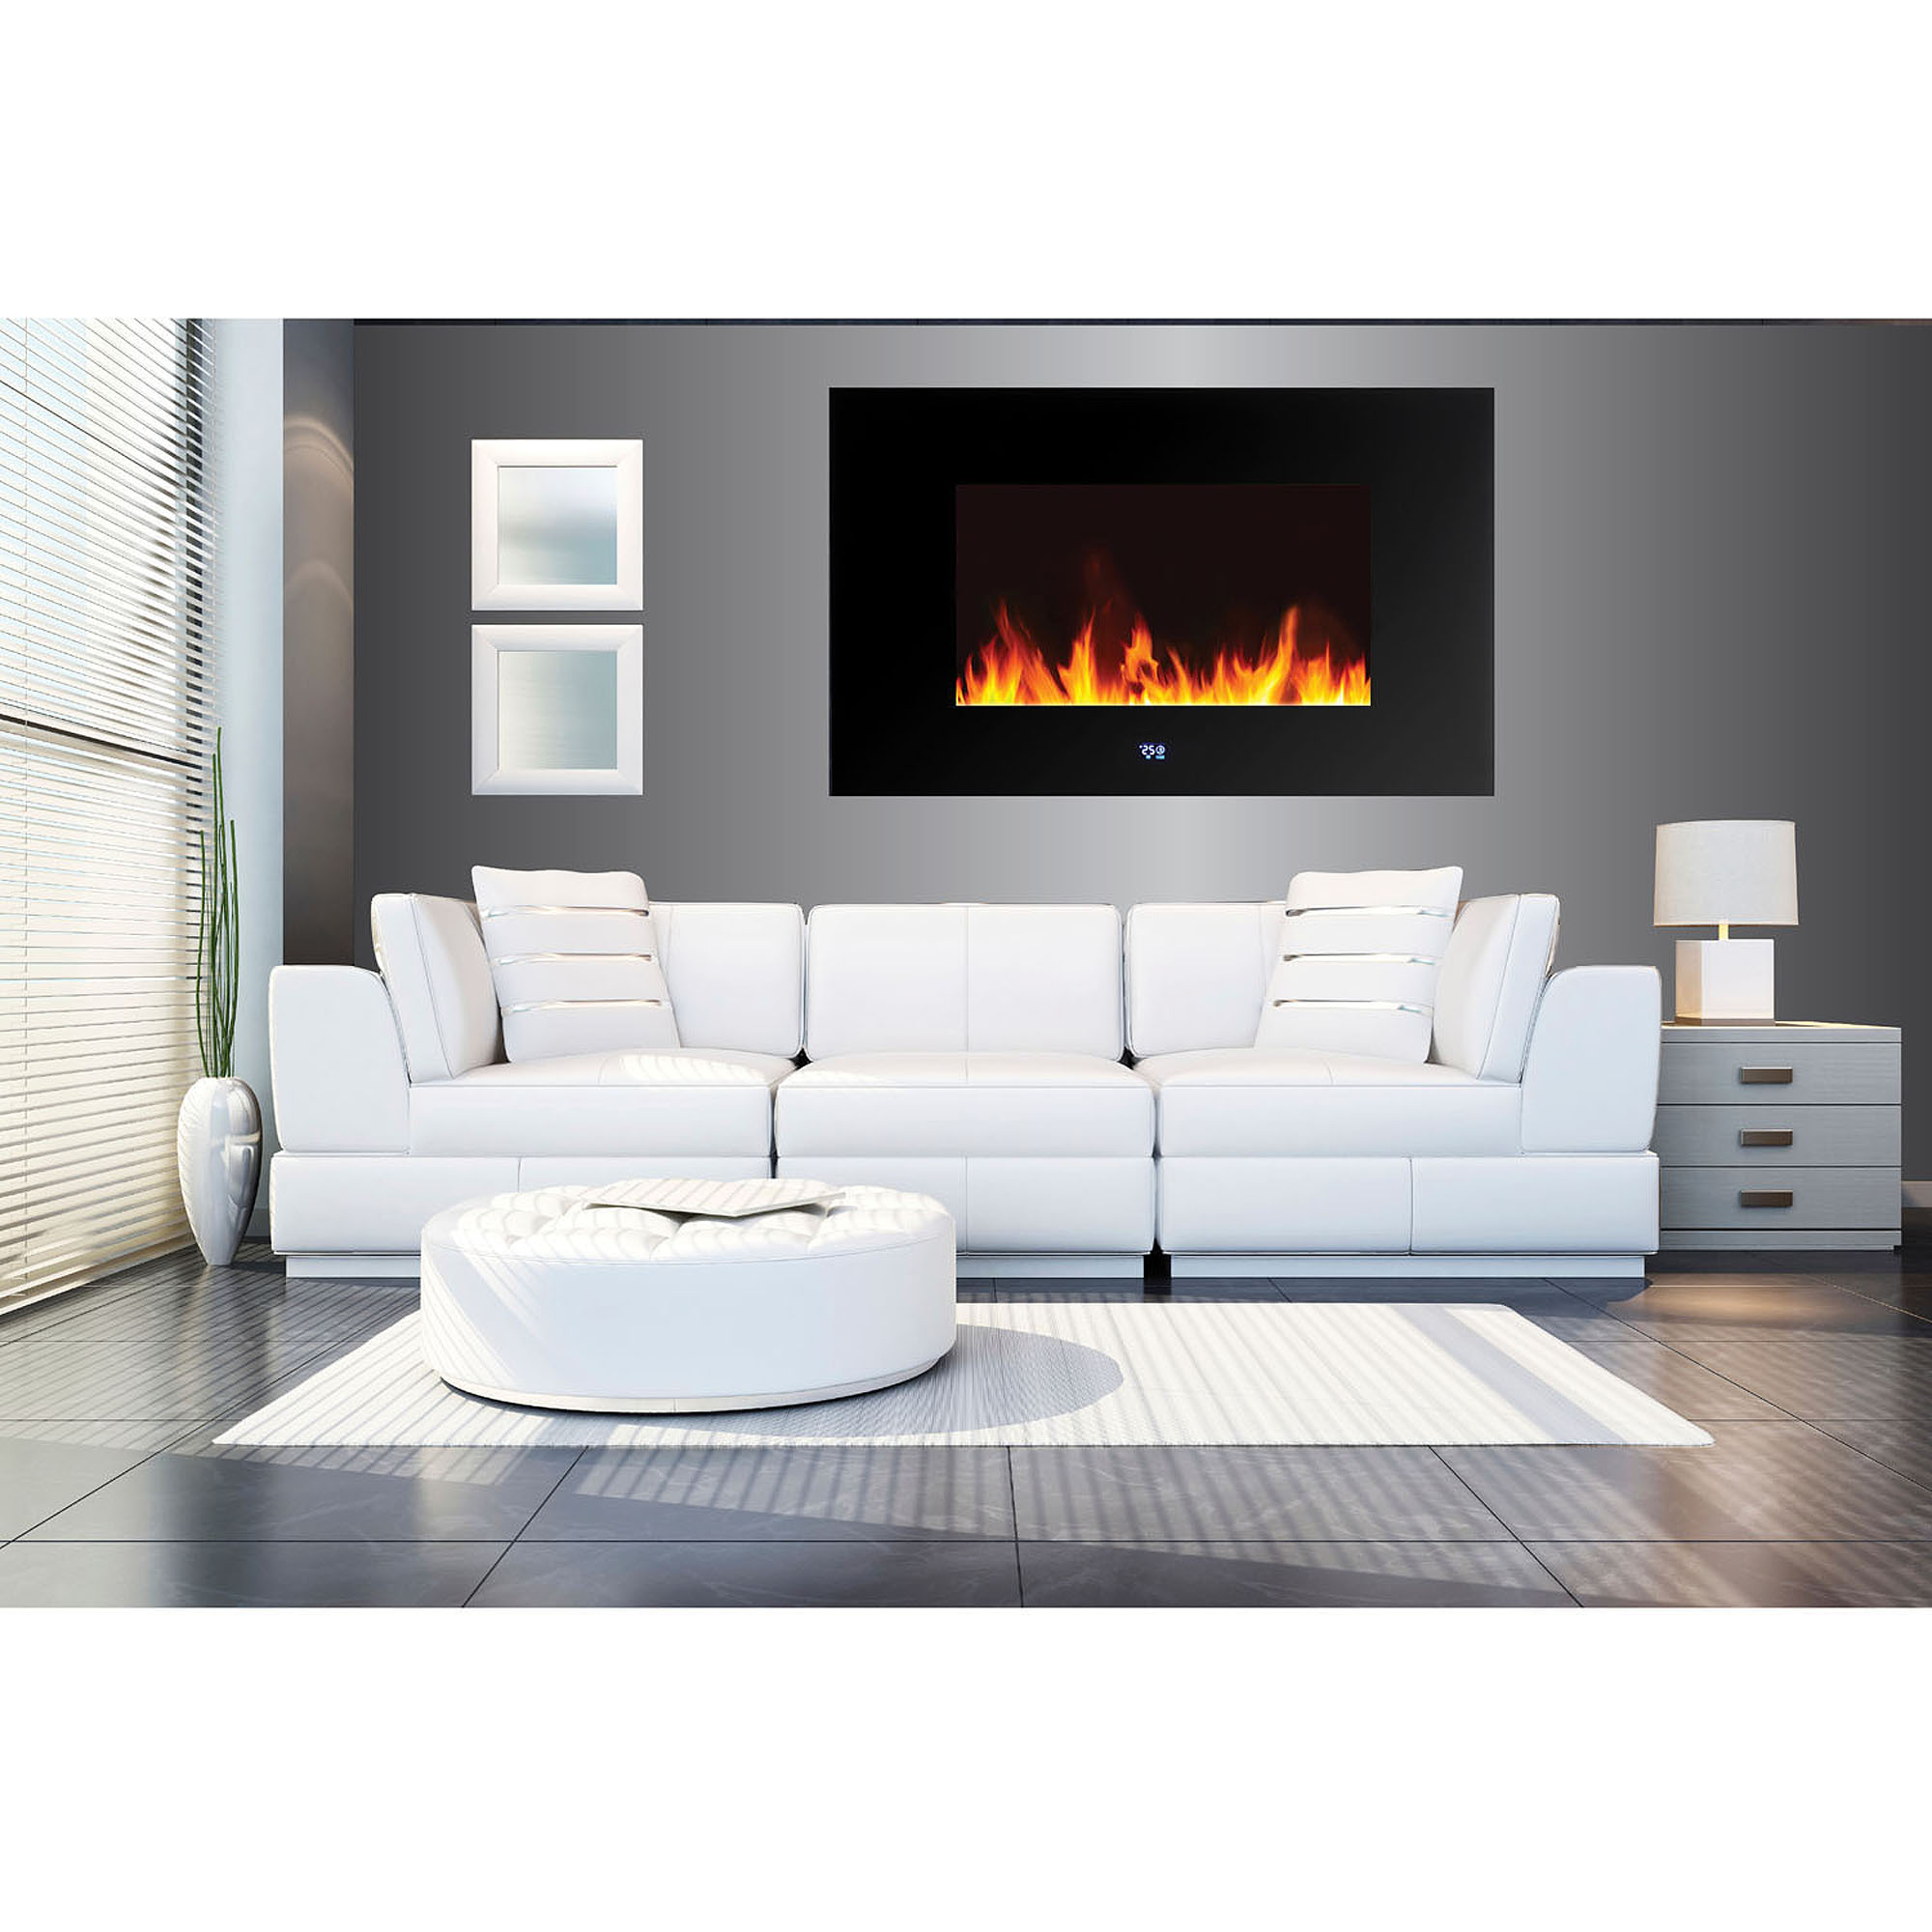 "Wall Hanging Fireplace twin-star international 34"" wall-mounted infrared quartz fireplace"